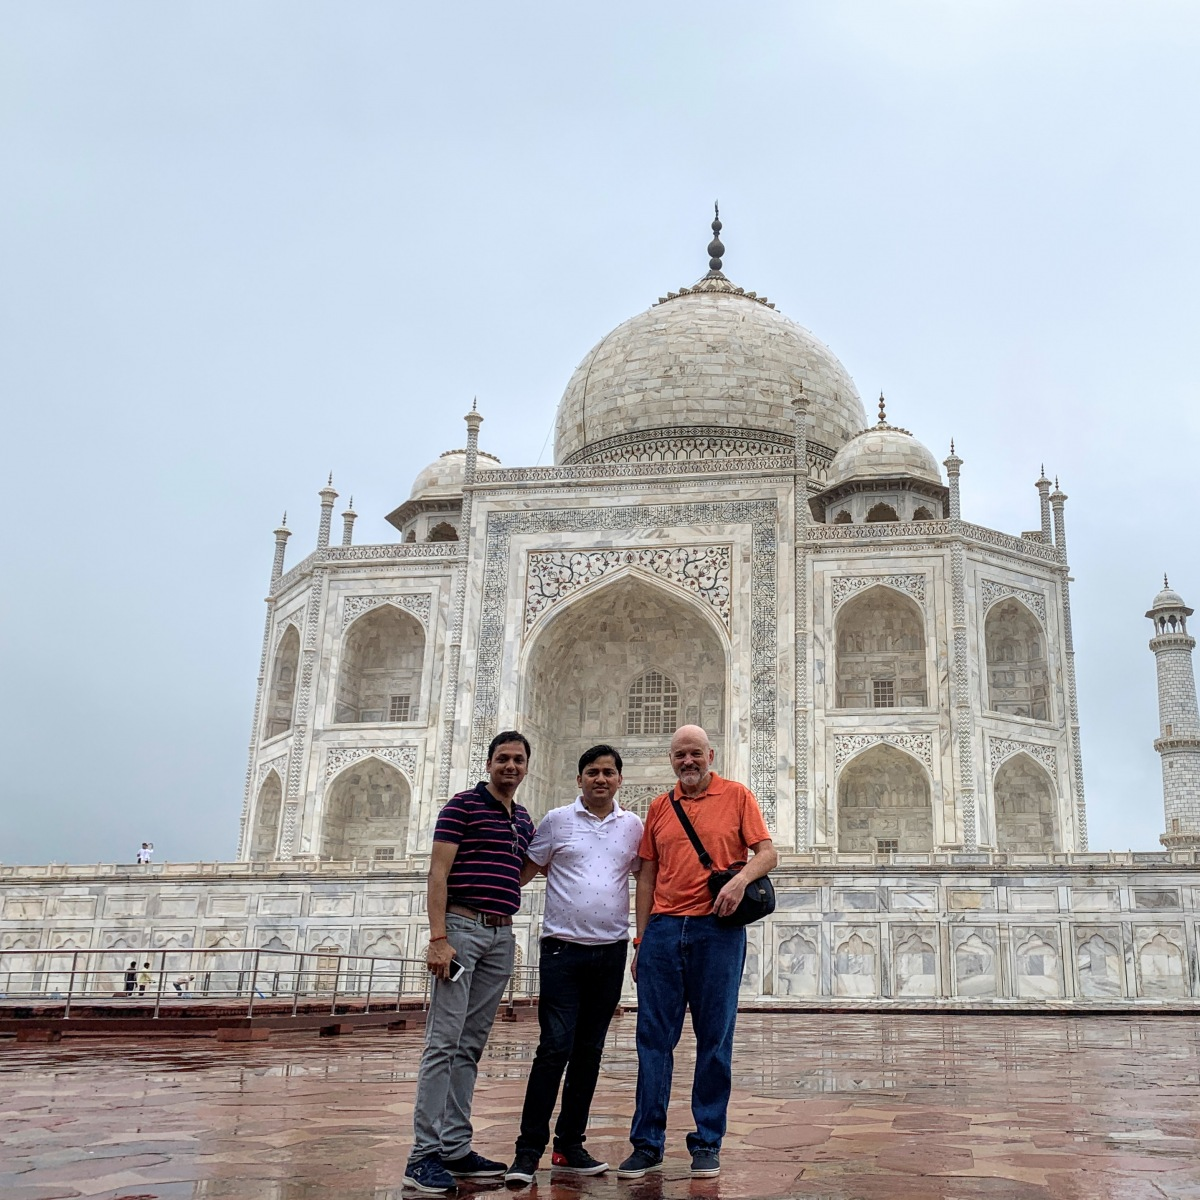 With Raj and Alok at the Taj Mahal